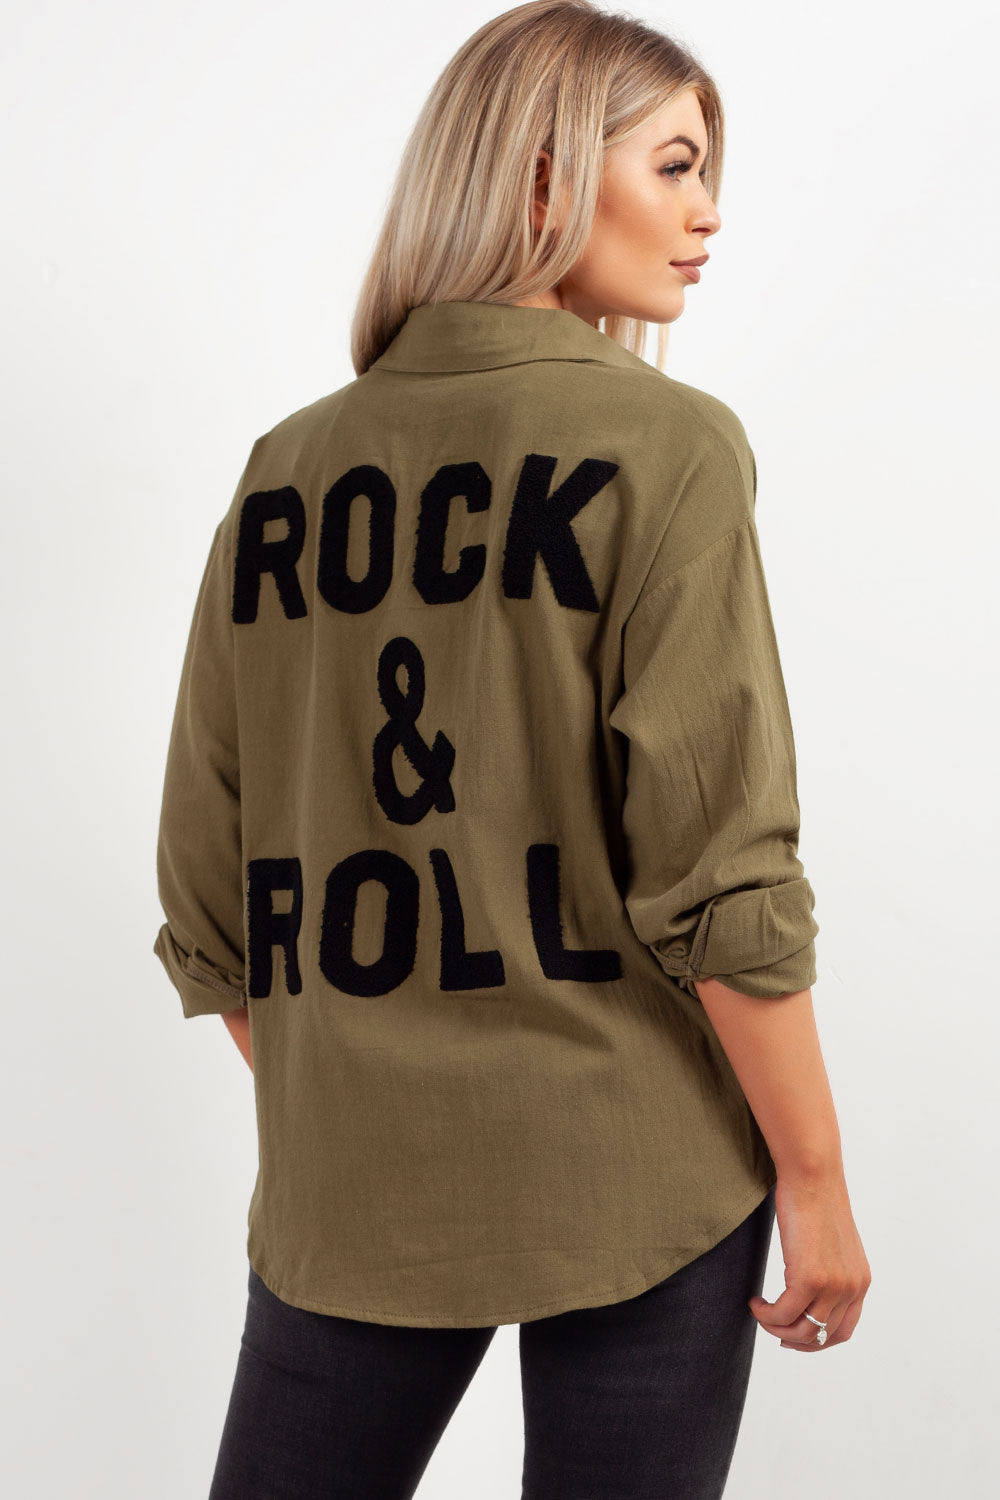 womens oversized rock & roll slogan shirt khaki